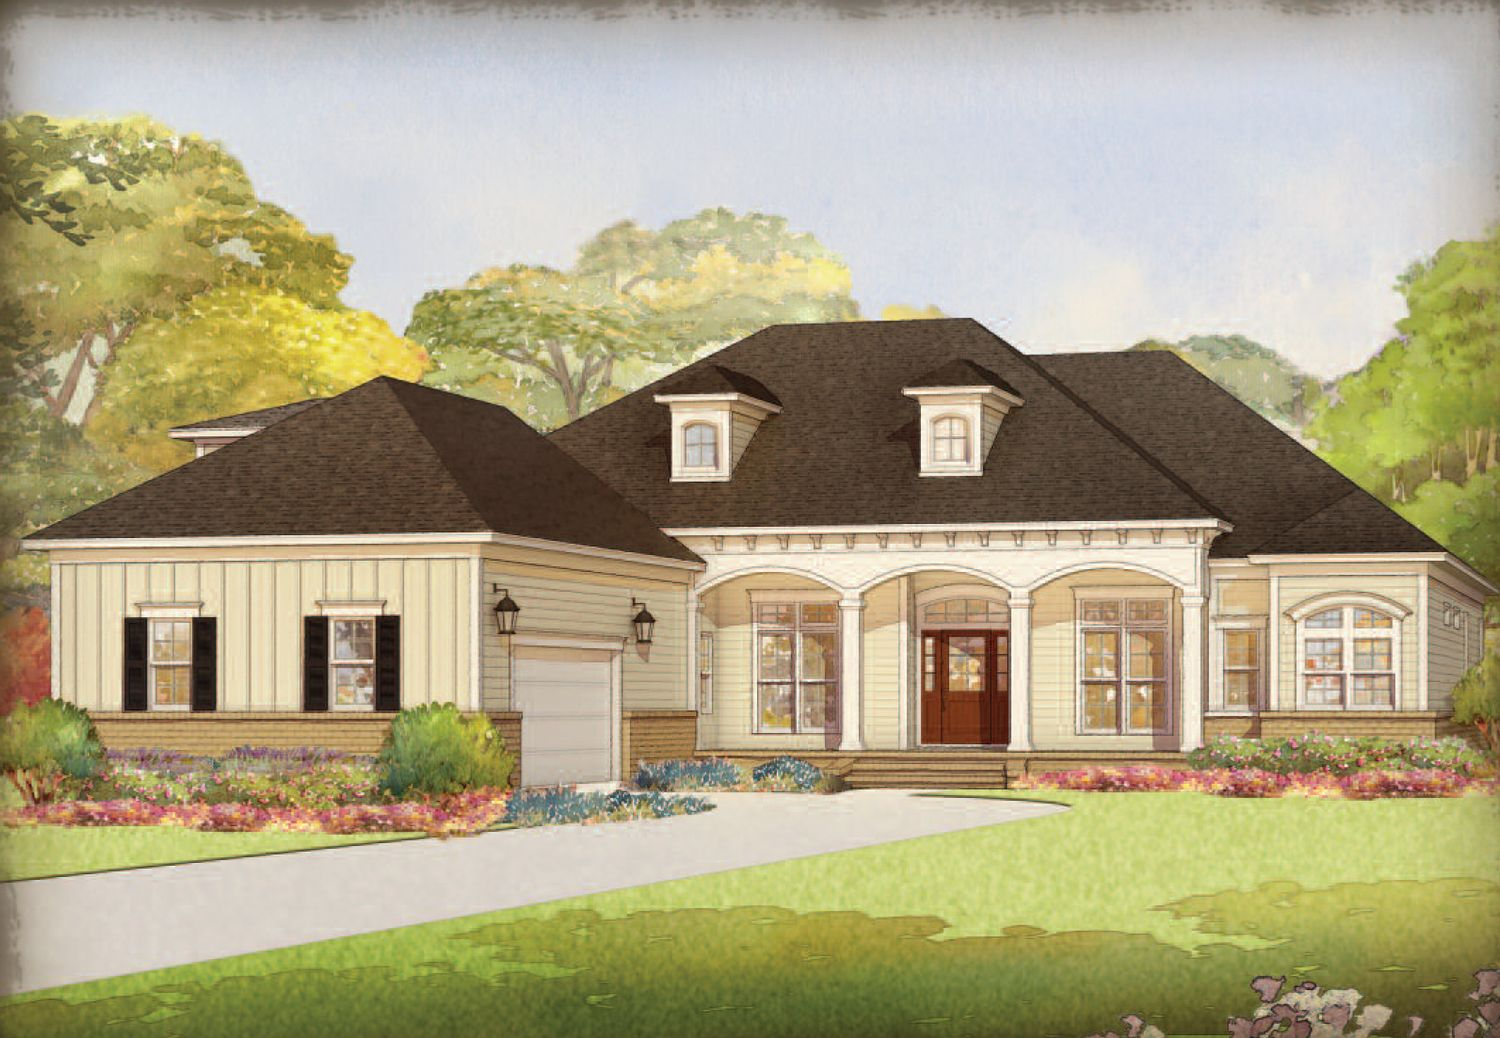 Single Family for Active at Cape Fear National At Brunswick Forest - The Lexington Ii Leland, North Carolina 28451 United States